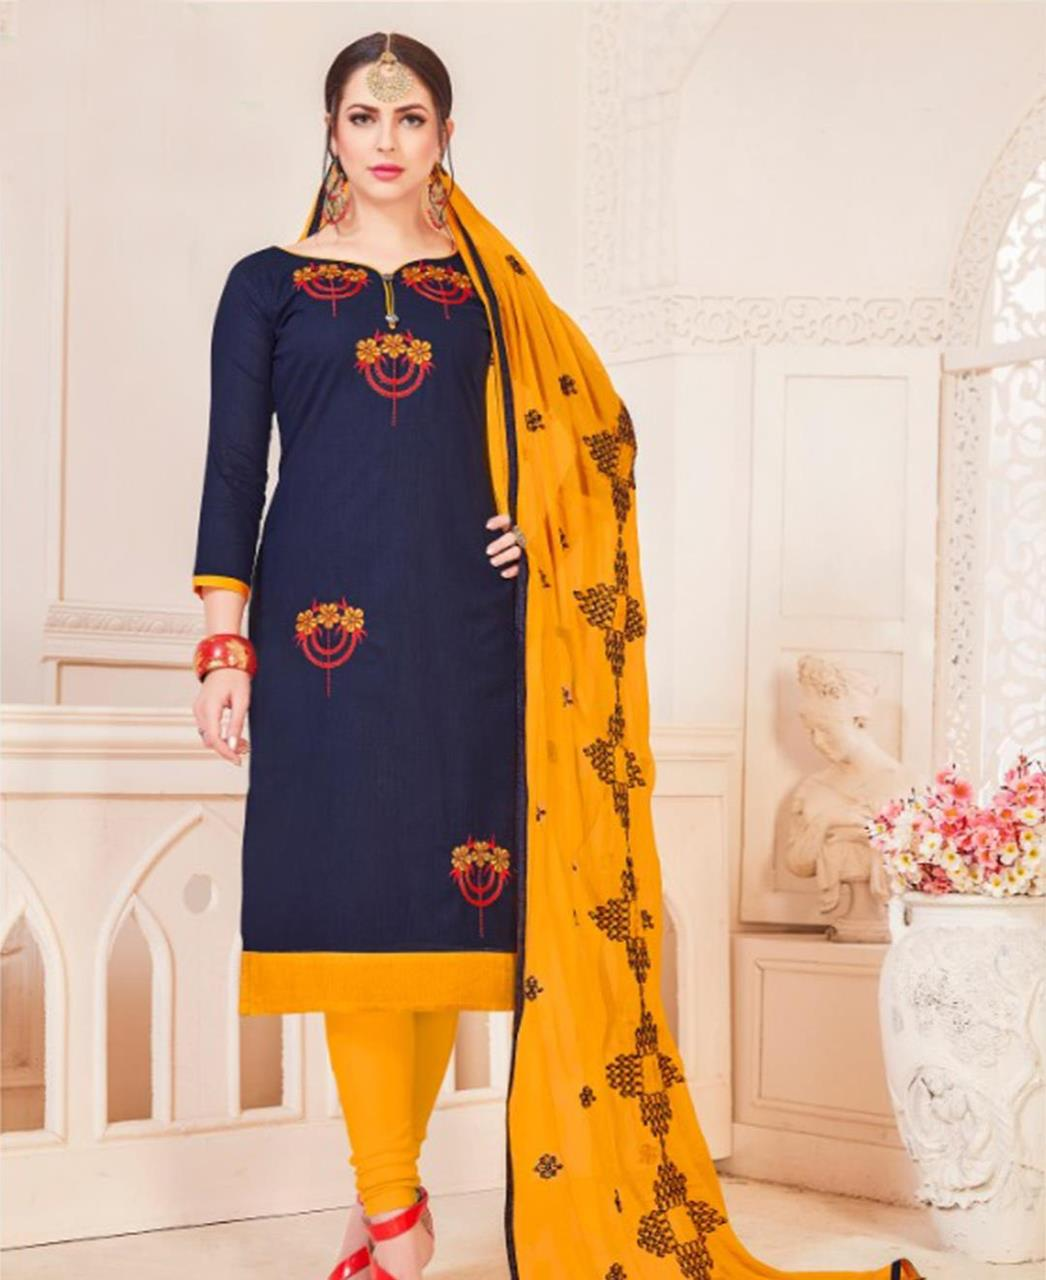 Embroidered Cotton Navyblue Straight Cut Salwar Kameez